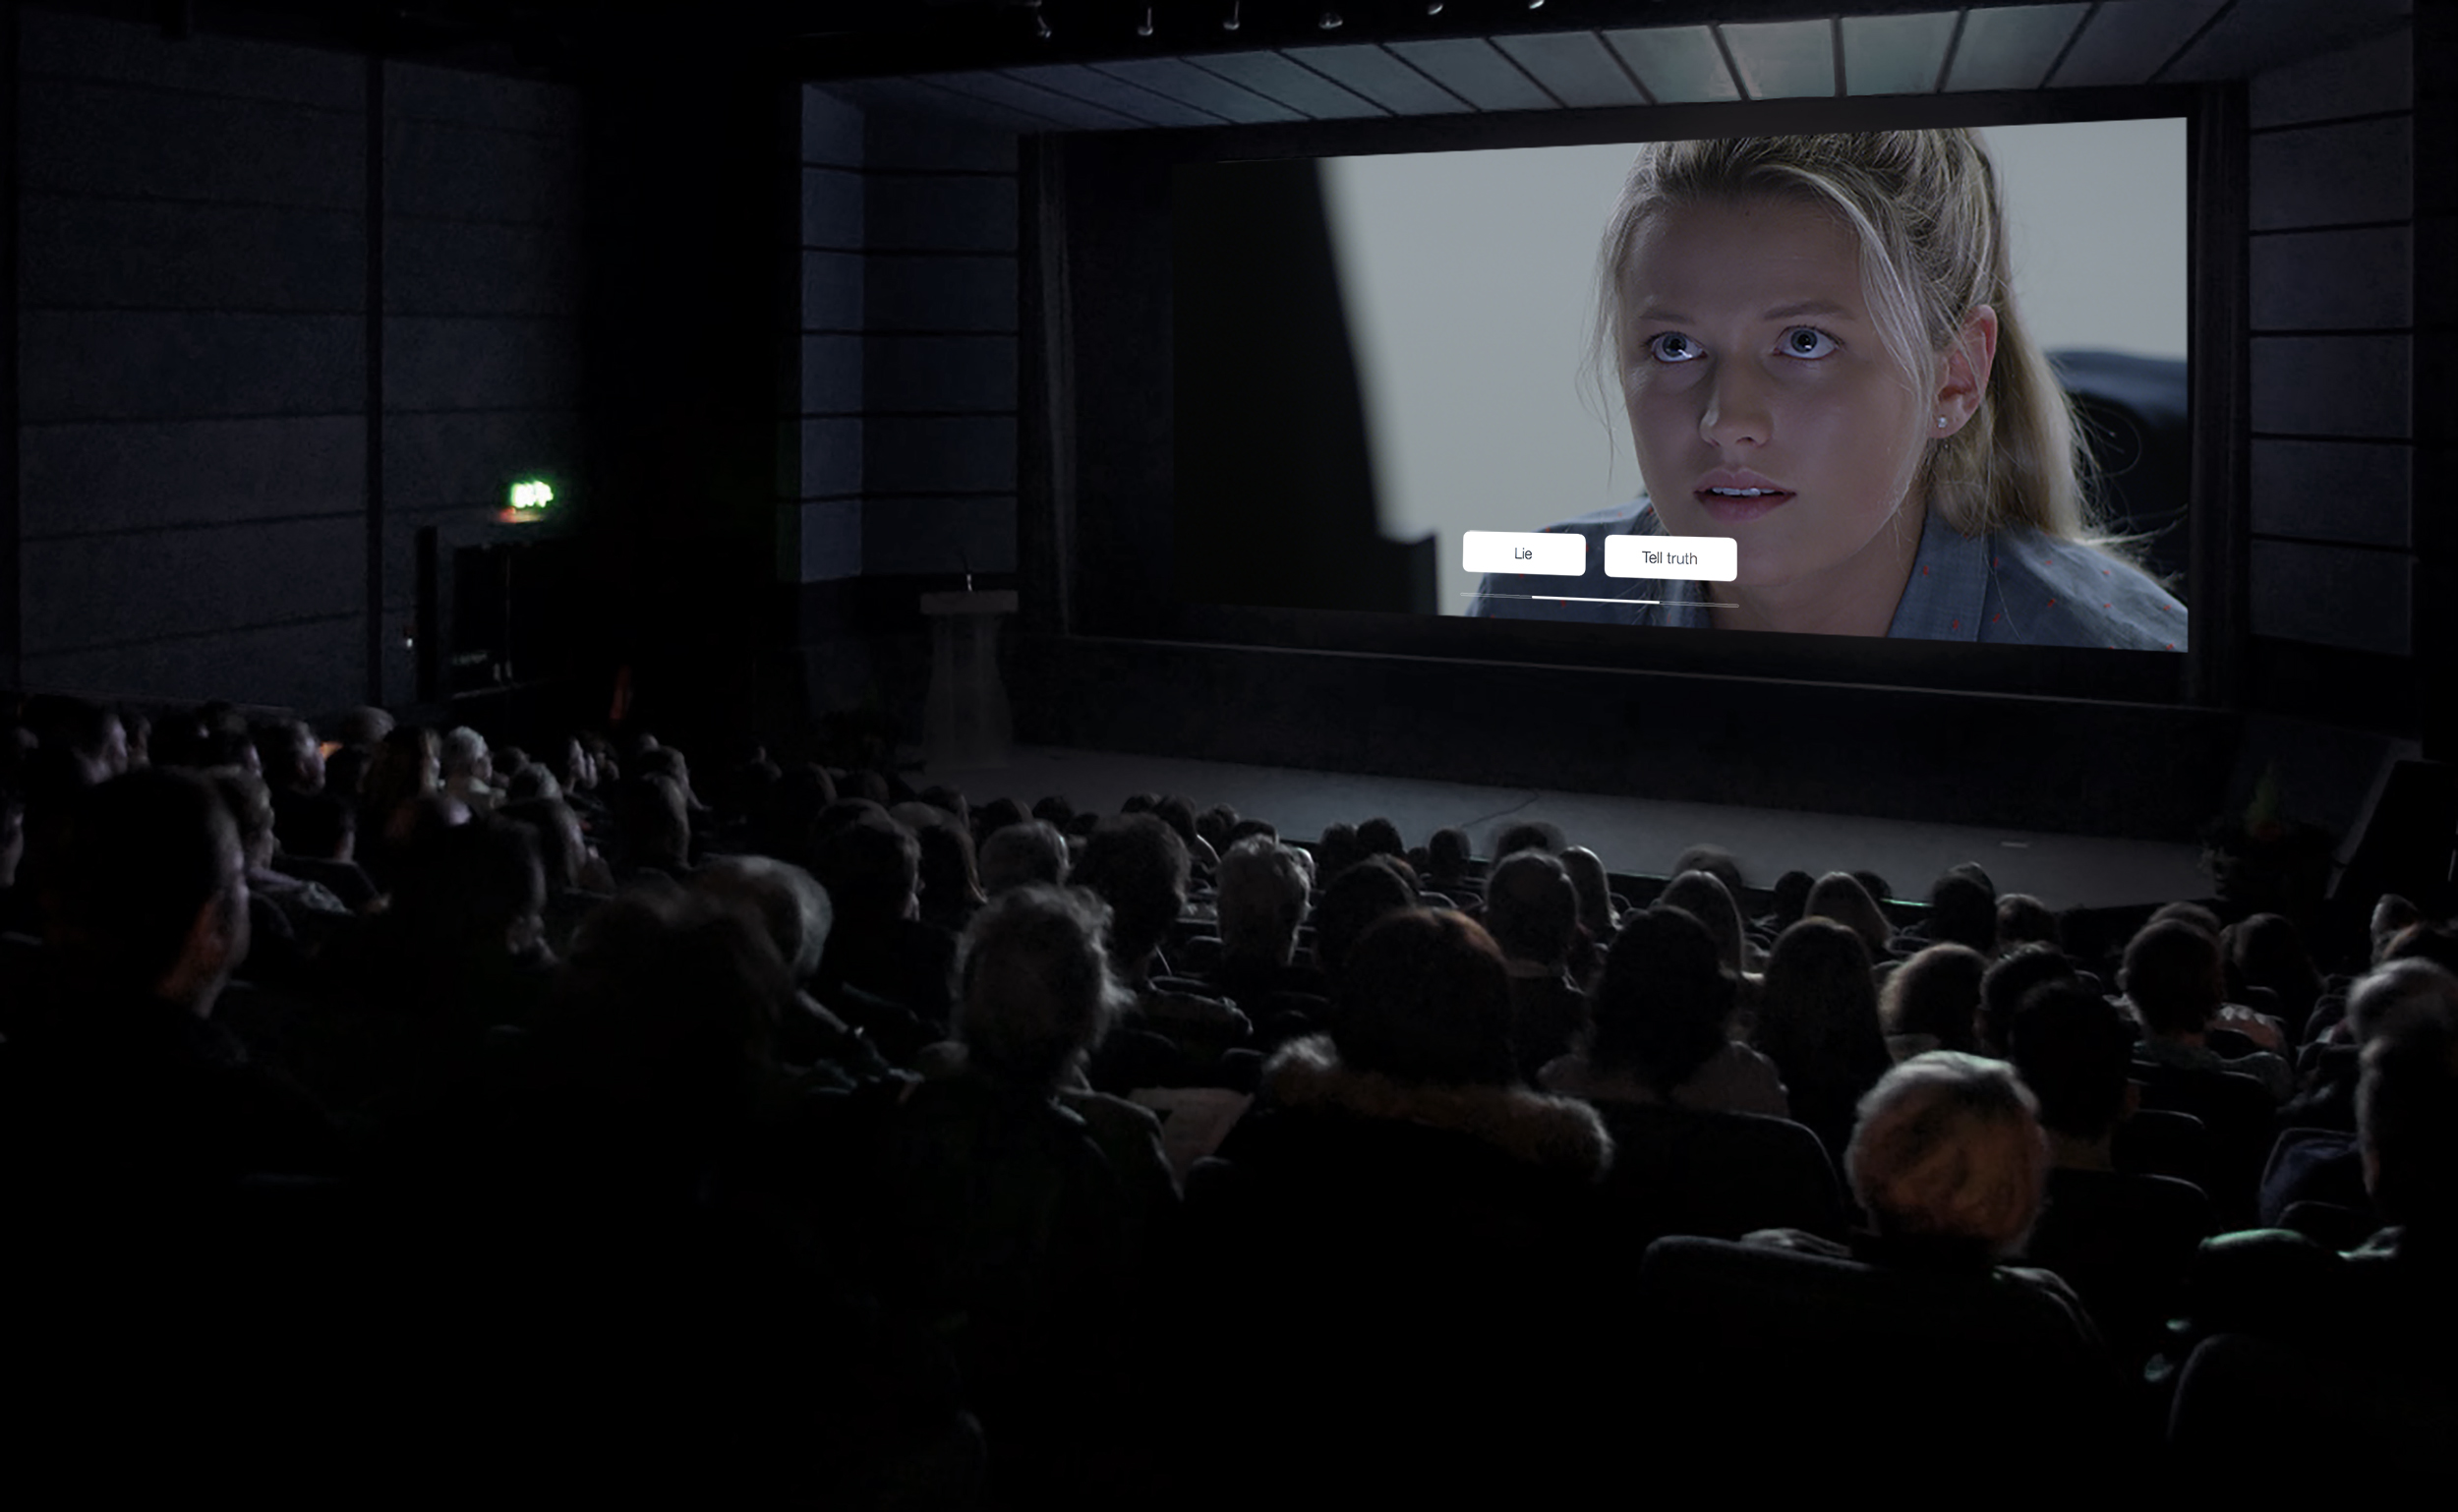 Discover interactive cinema with Late Shift - Nouvelles